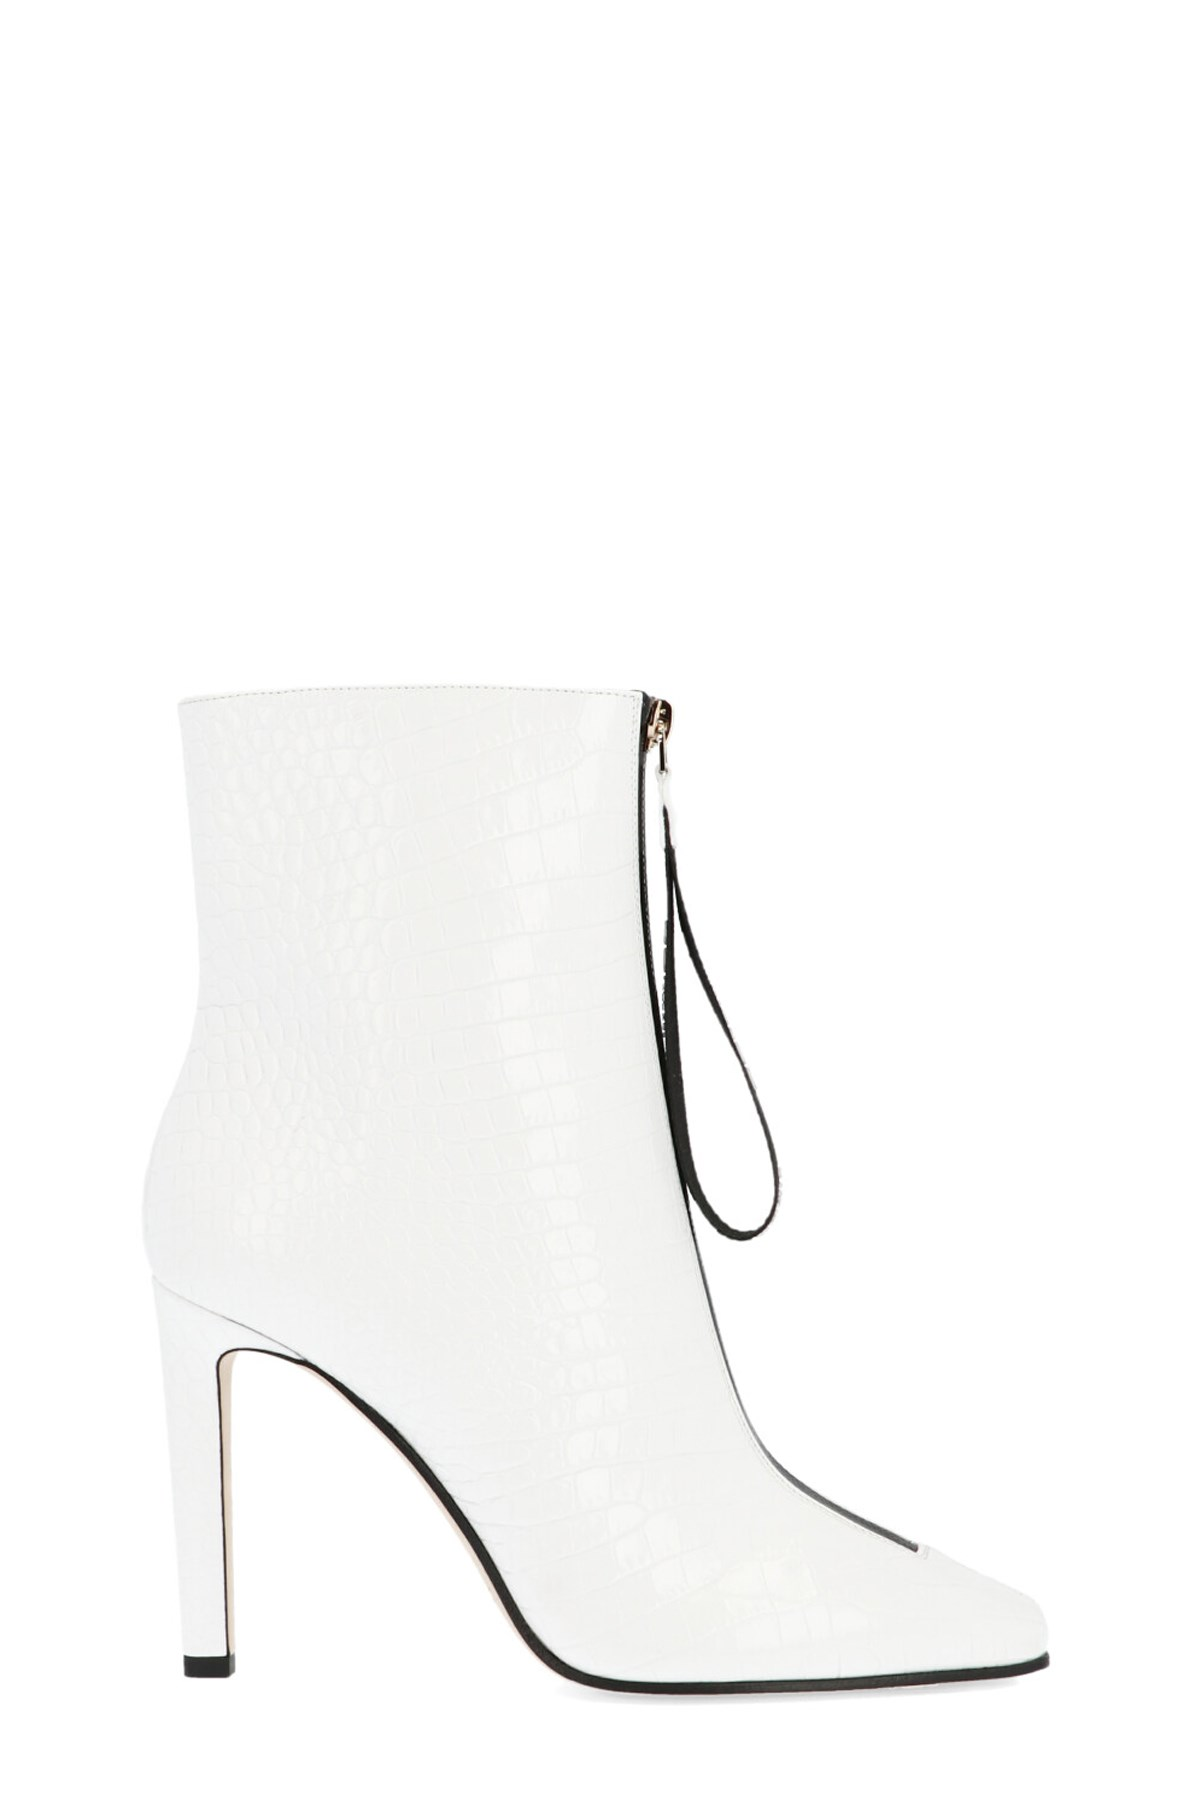 check out 8fa1e e1ca1 'Macel' ankle boots